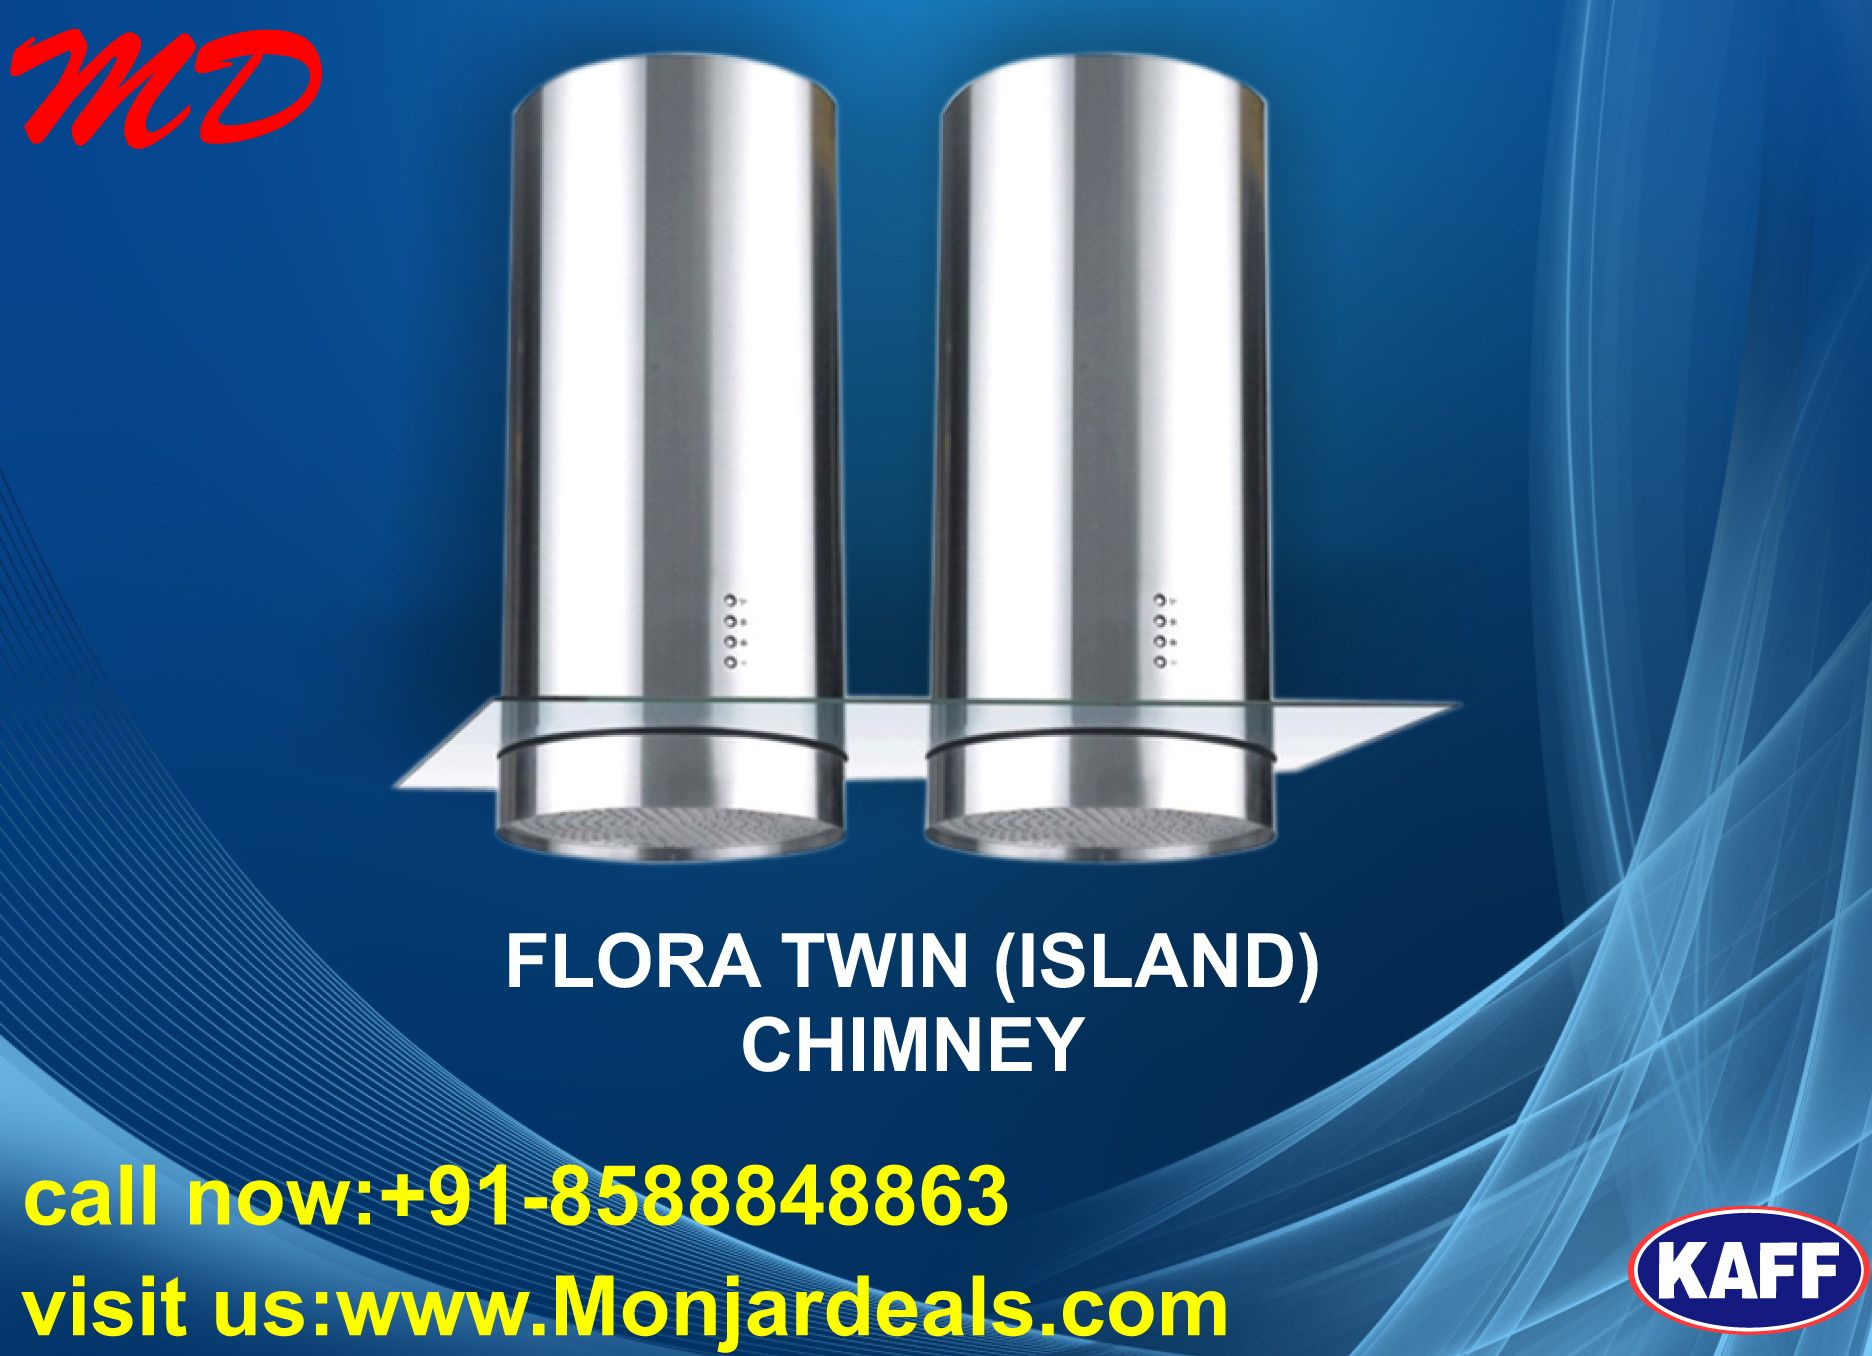 Uncategorized Online Shopping Sites For Kitchen Appliances kaff kitchen chimney best price appliances online flora twin is island complete